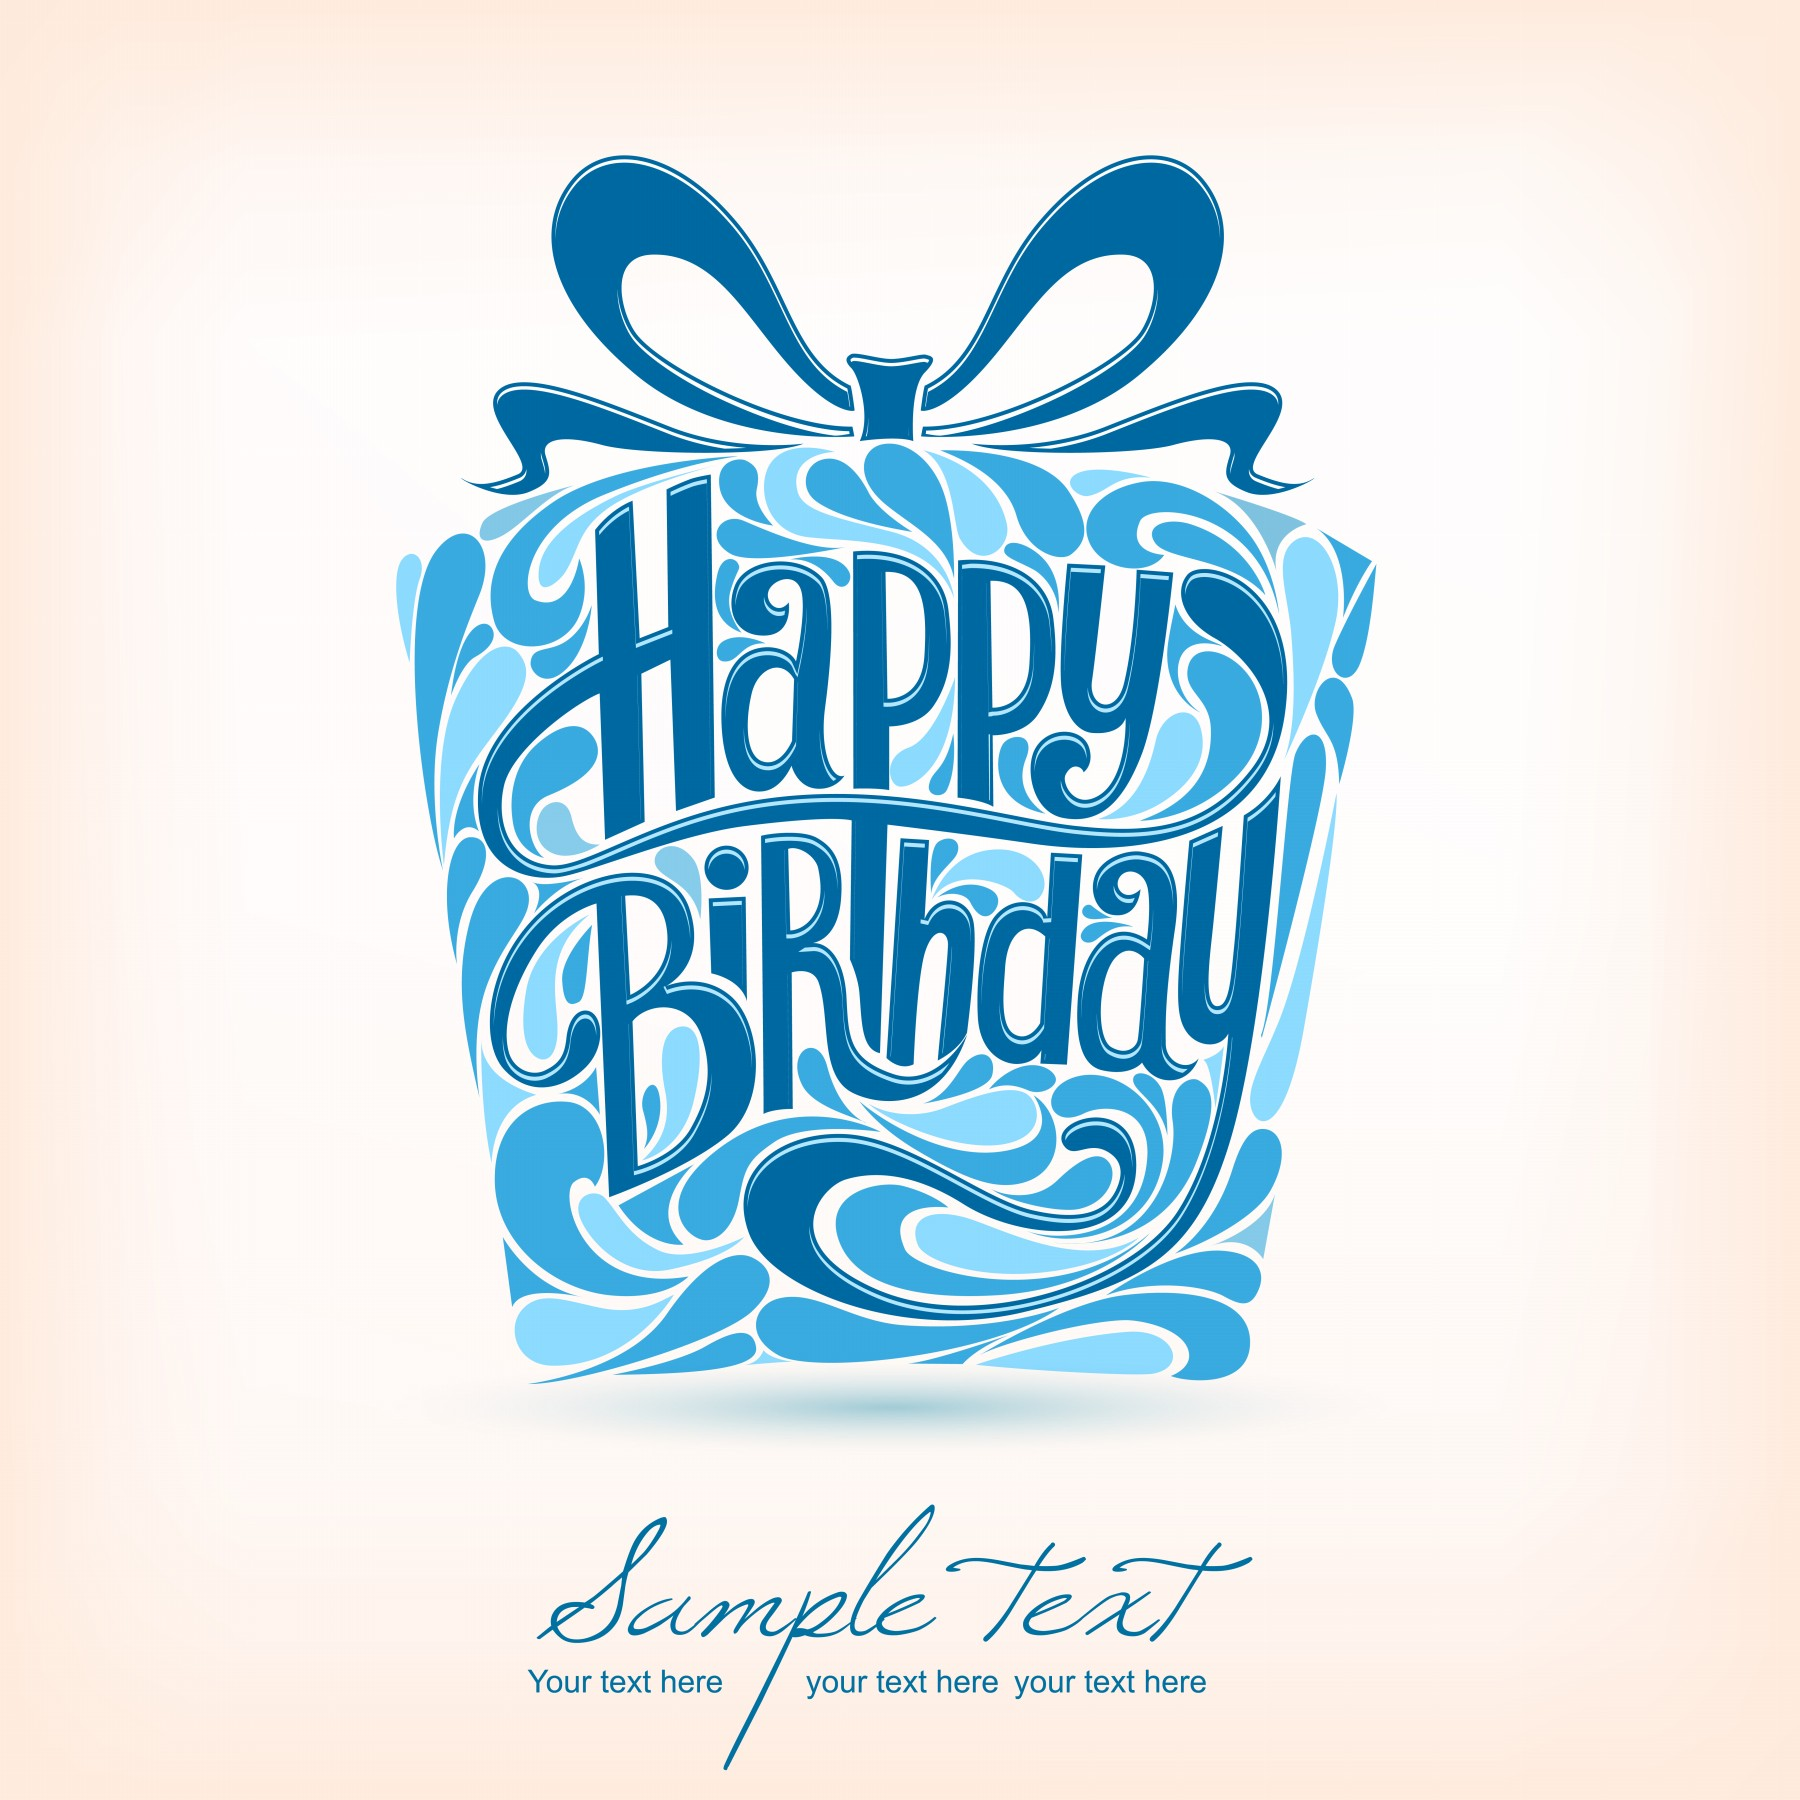 Birthday card font image collections birthday cards ideas 14 happy birthday font design images happy birthday font happy happy birthday graphic design bookmarktalkfo image bookmarktalkfo Choice Image